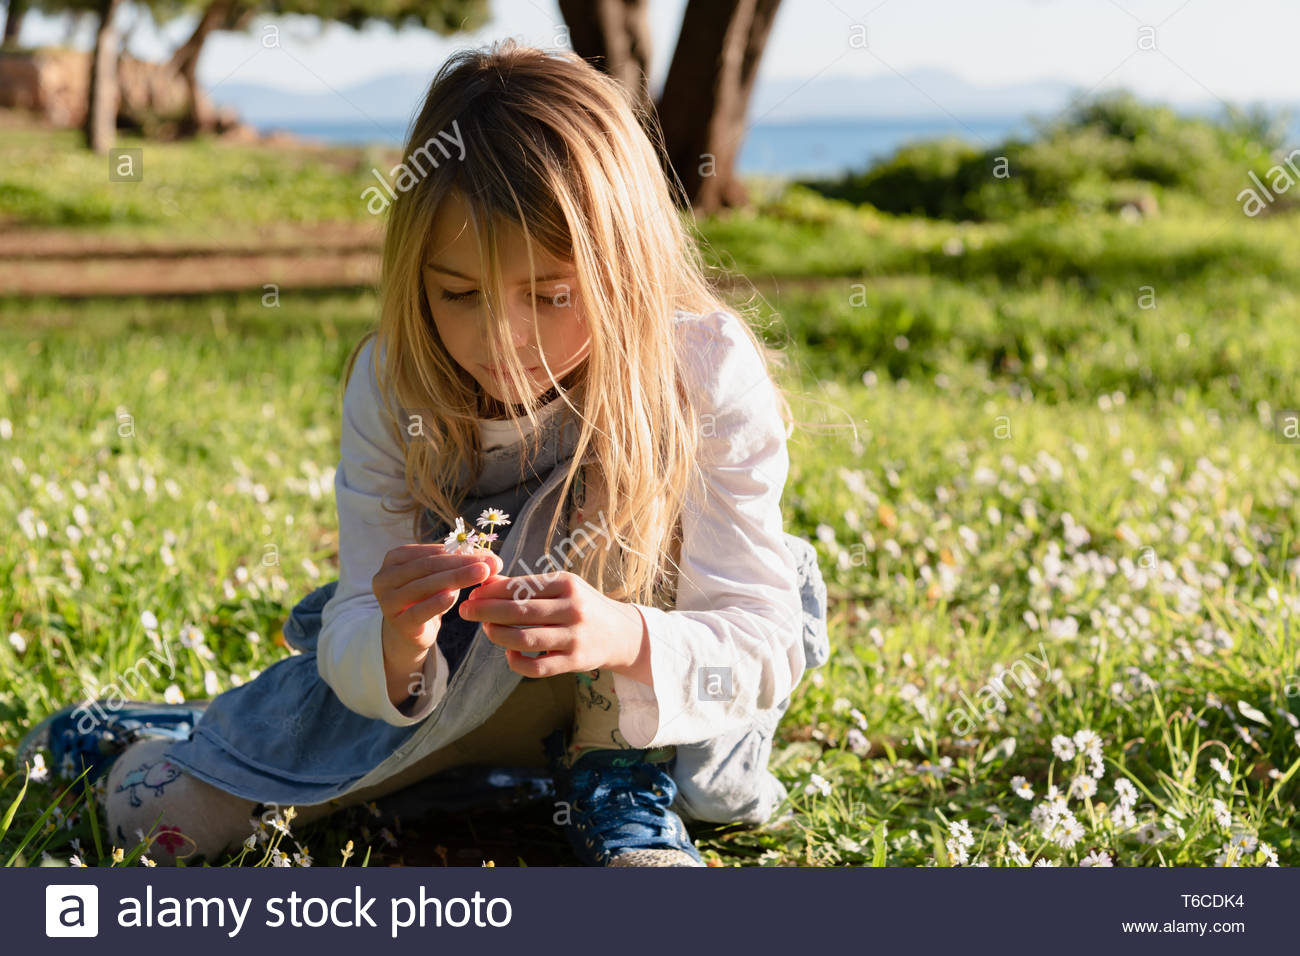 Young girl with blonde hair picking wild flowers in a park next to the sea shore Stock Photo